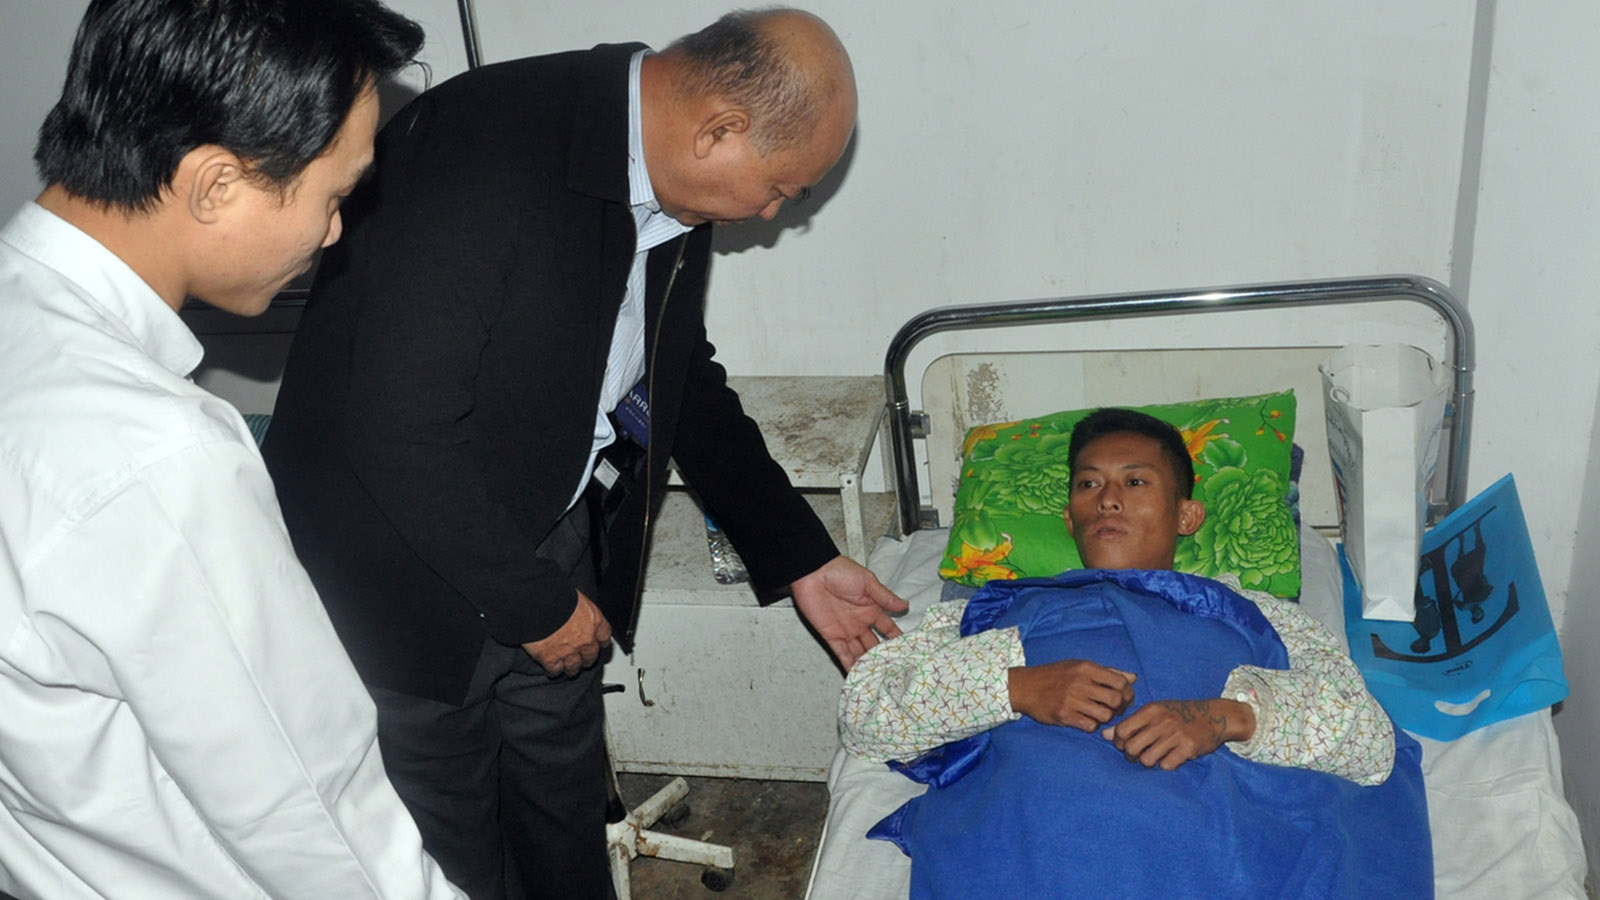 Deputy Minister U Khin Maung Tin consoles the wounded police personnel in Maungtaw People's Hospital.photo: mna